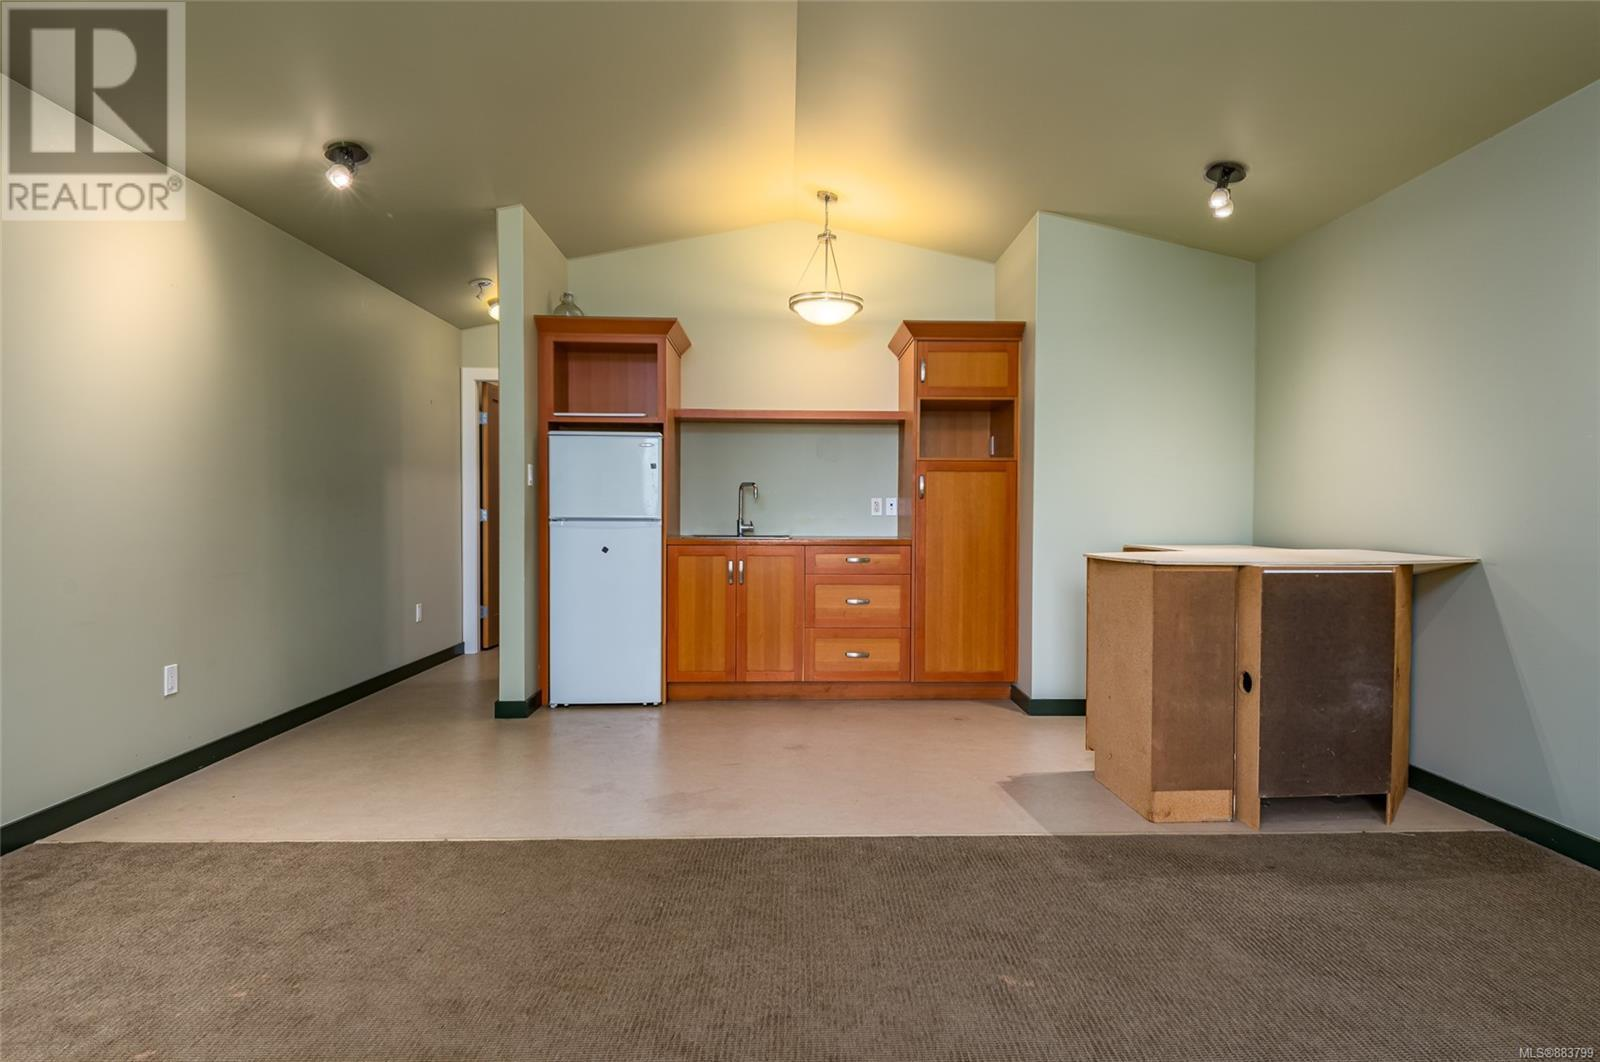 MLS® #883799 - Courtenay House For sale Image #85